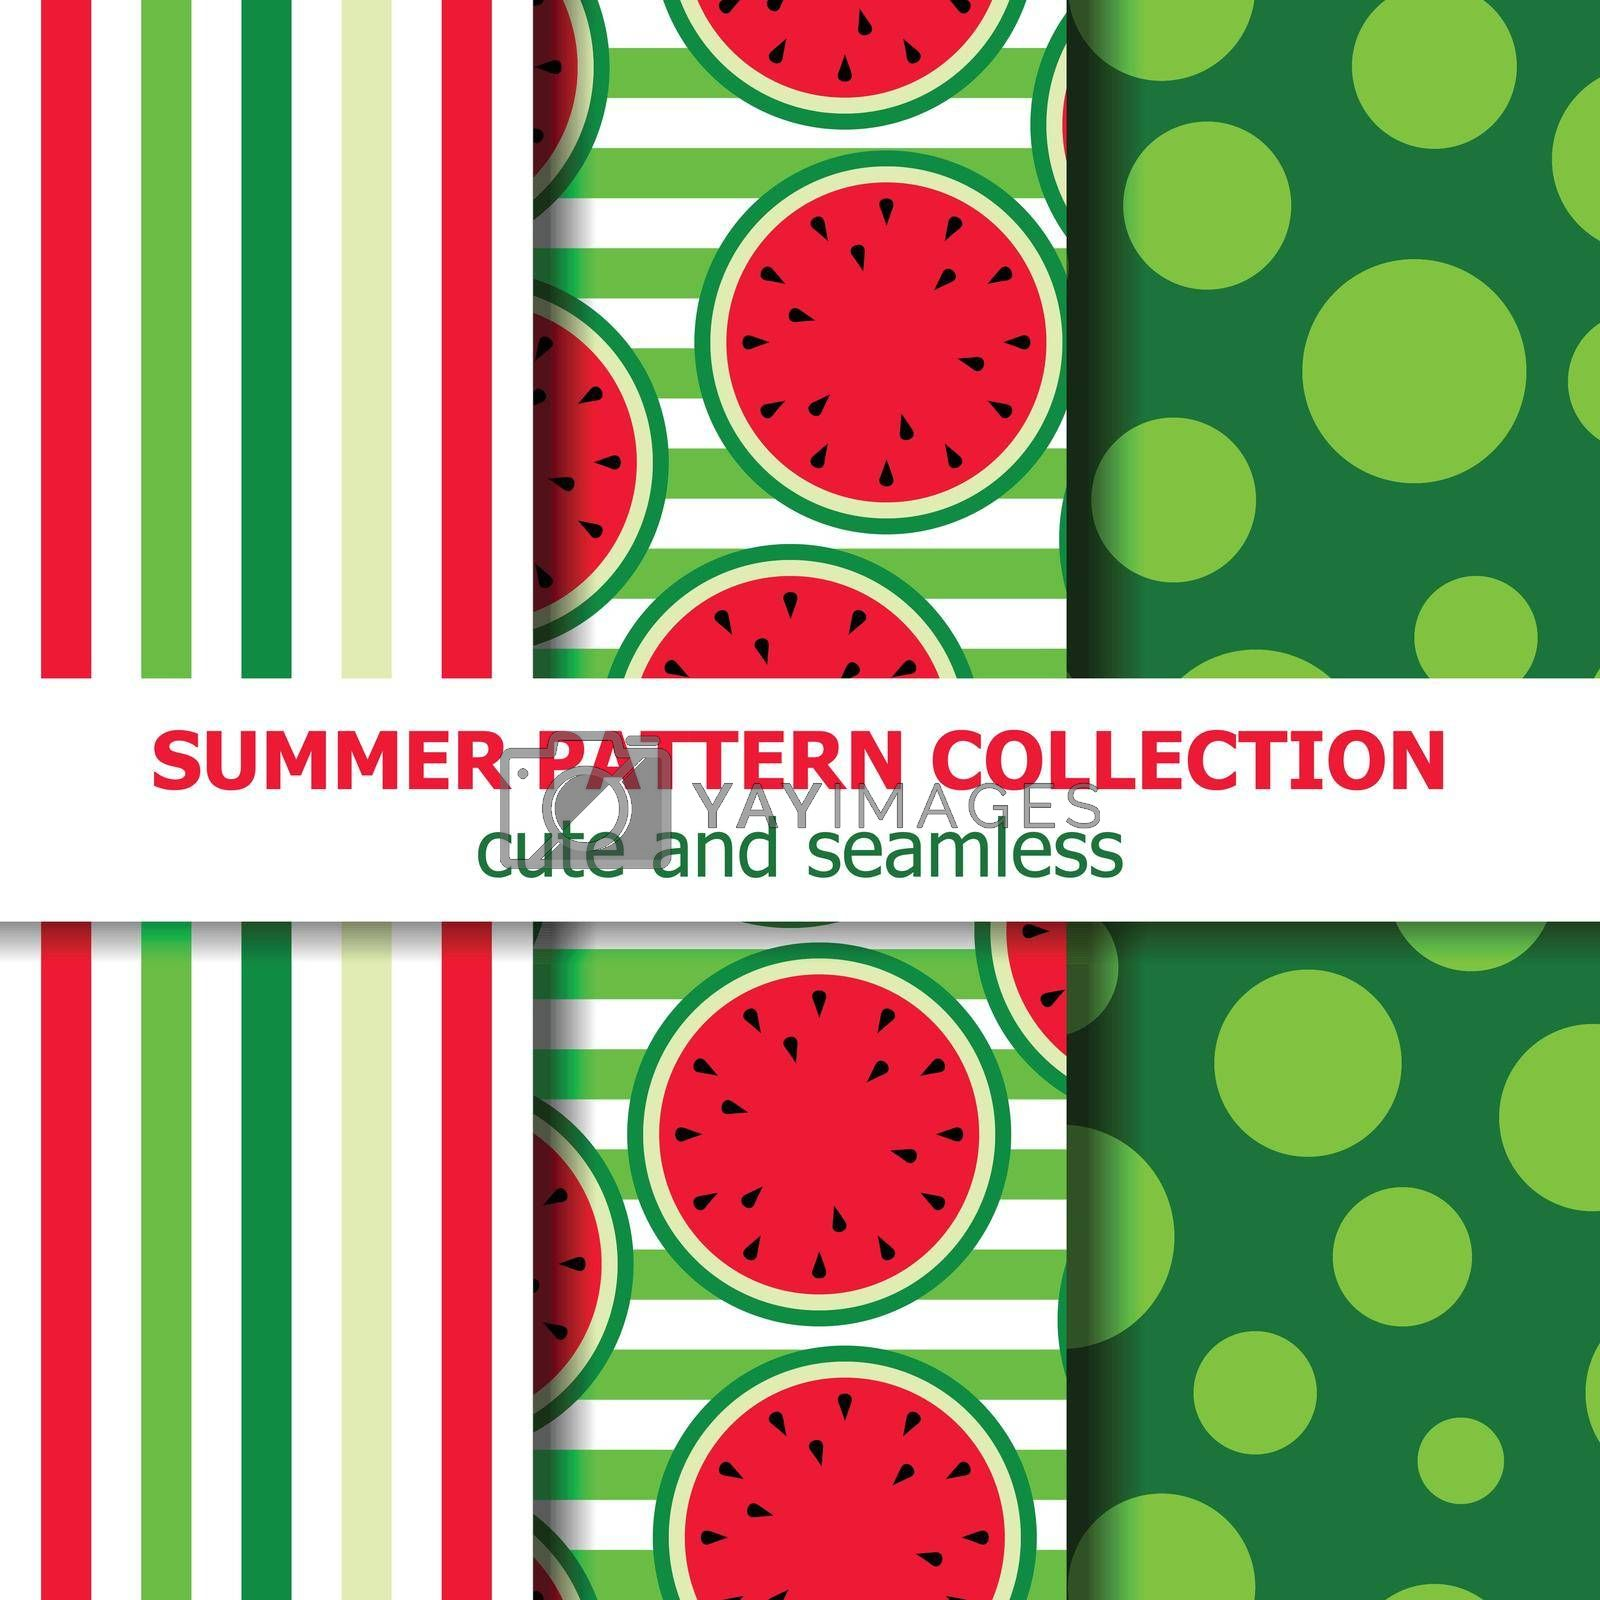 Delicious summer pattern collection. Watermelon theme. Summer banner. Vector